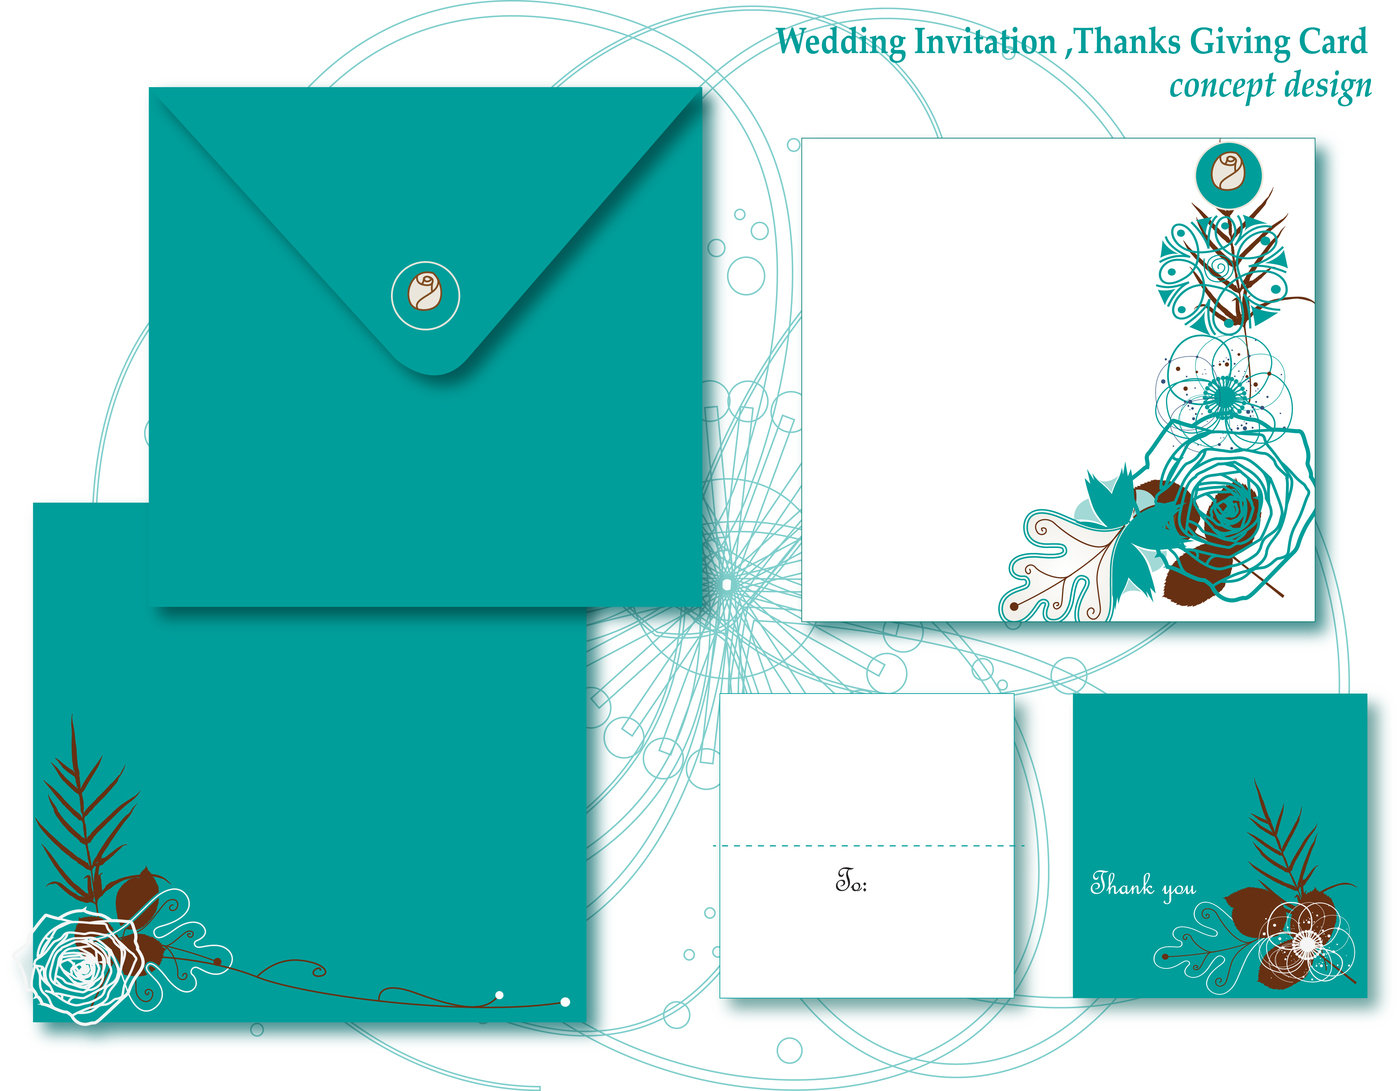 Wedding invitation design concept by haidee eng bagatsolon at wedding invitation design concept by haidee eng bagatsolon at coroflot stopboris Image collections